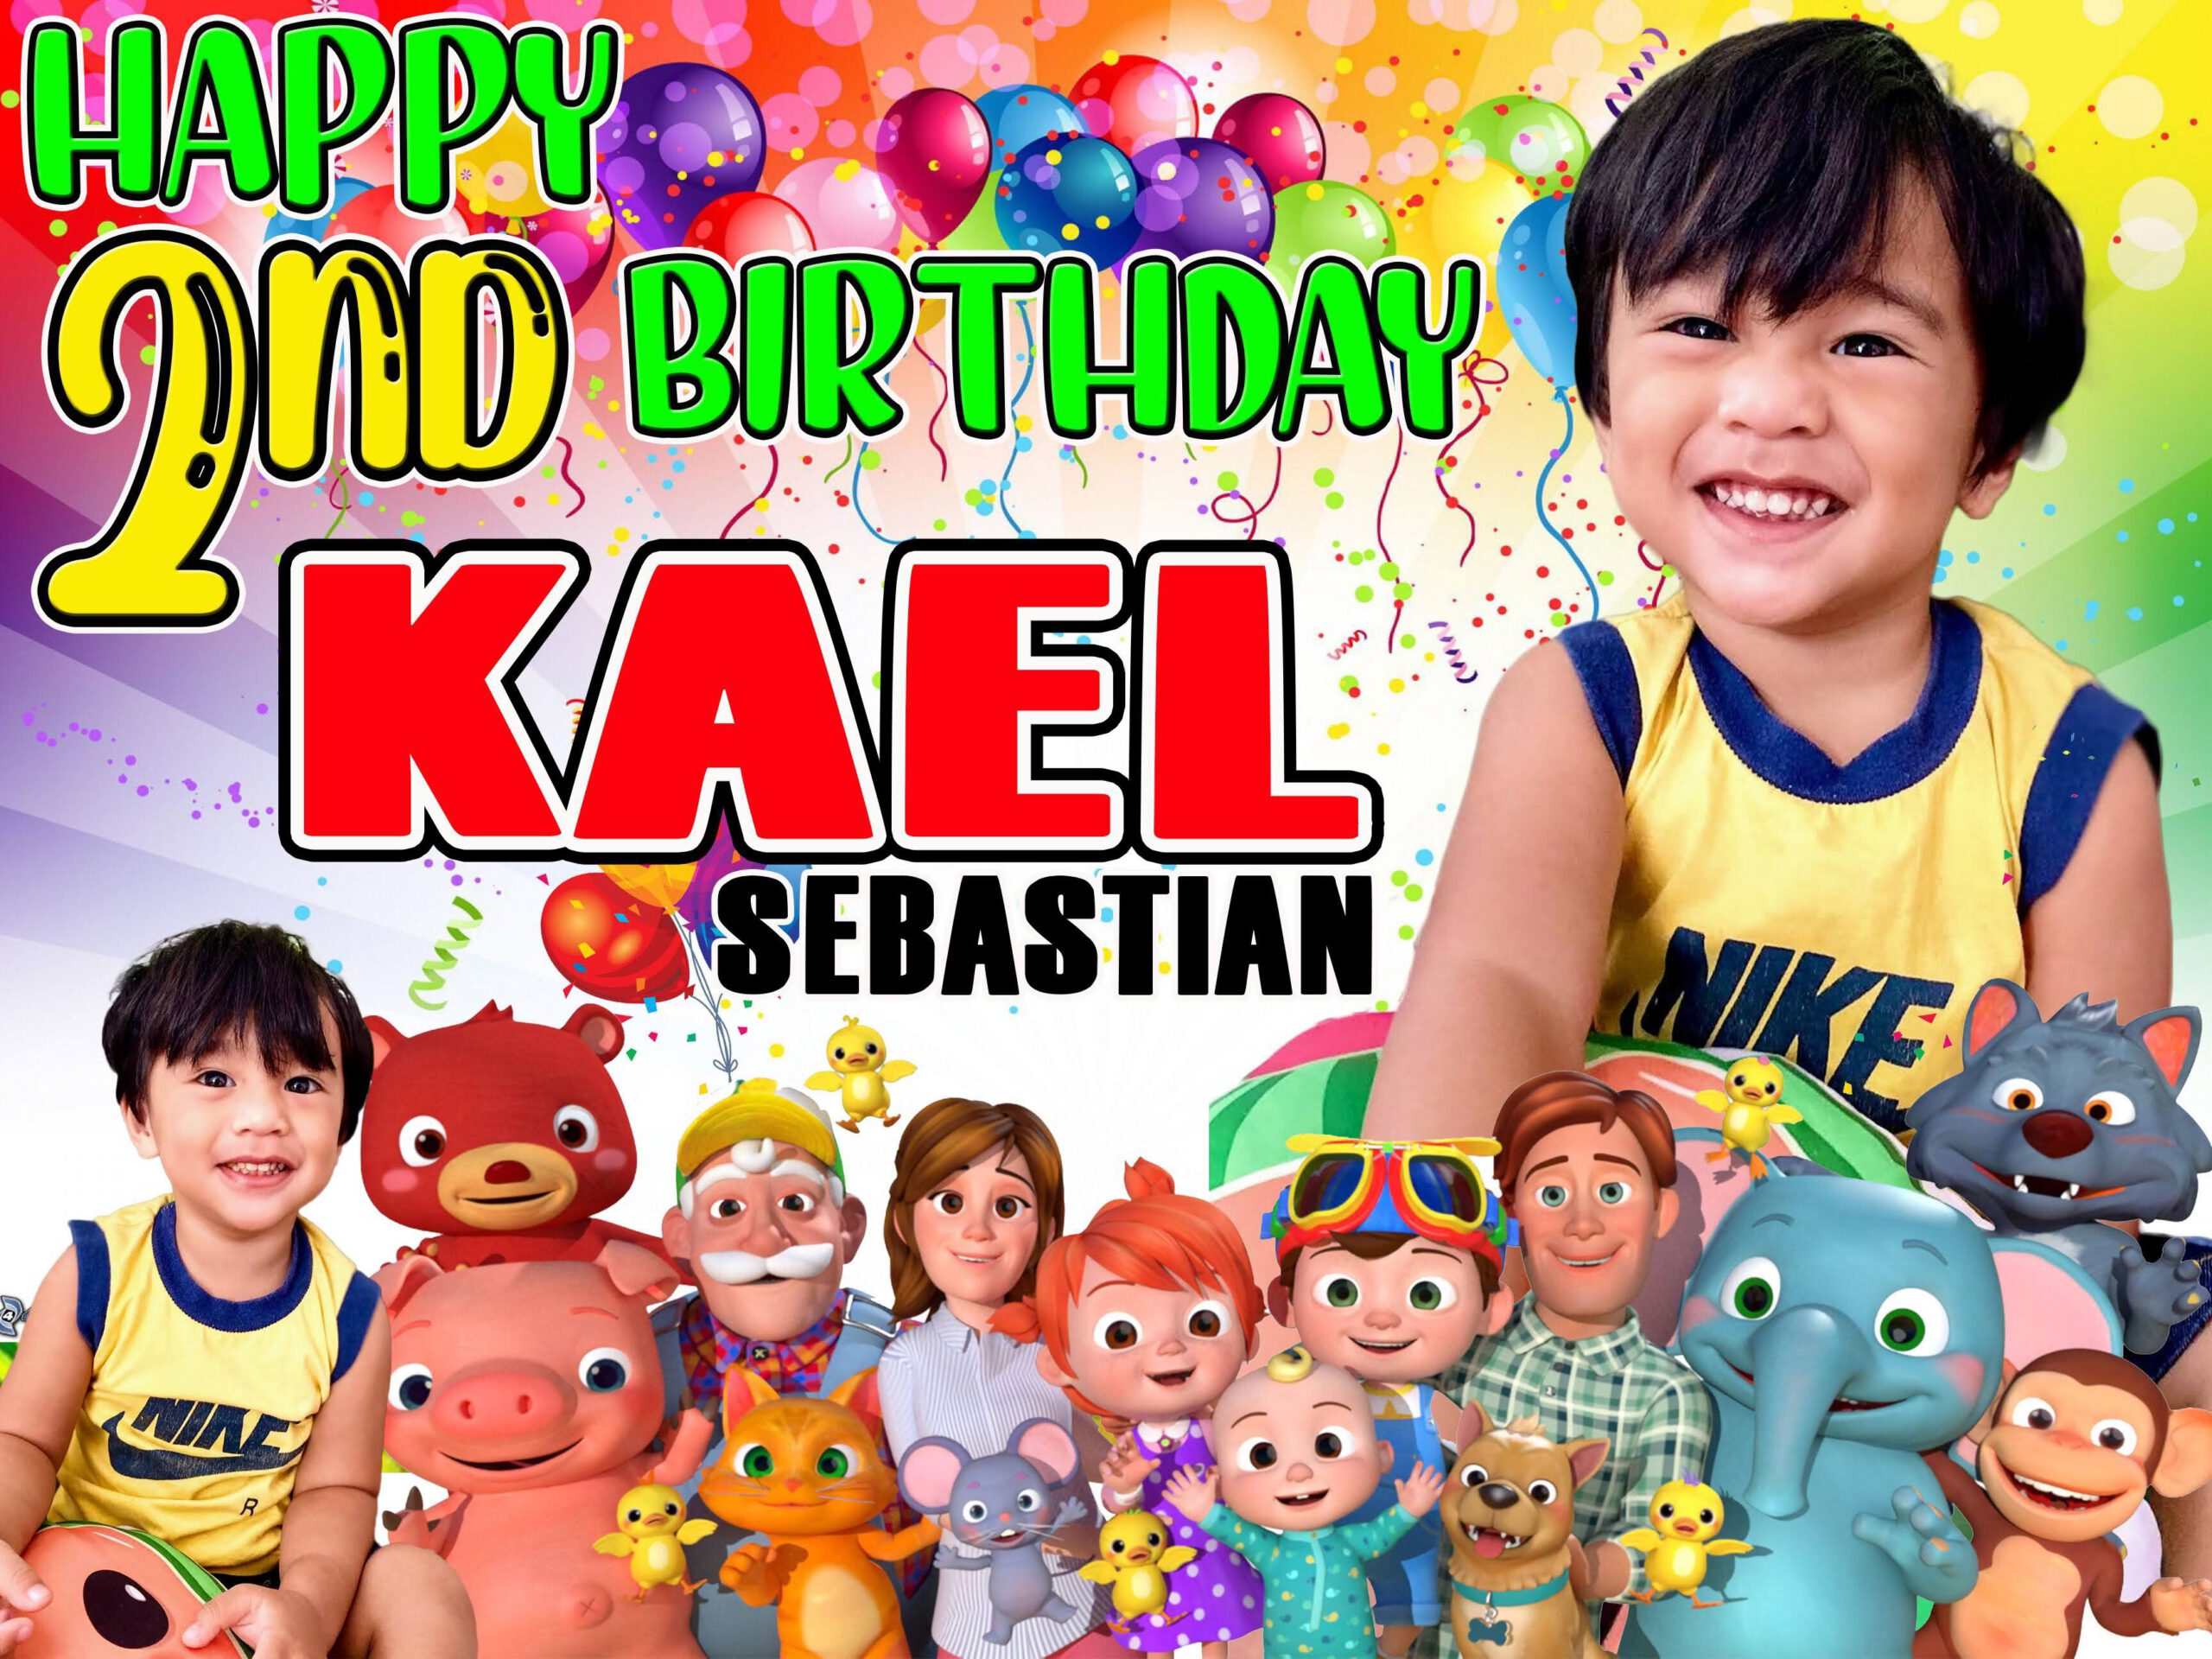 kael sebastian cocomelon theme tarpaulin design by jtarp design 1_original